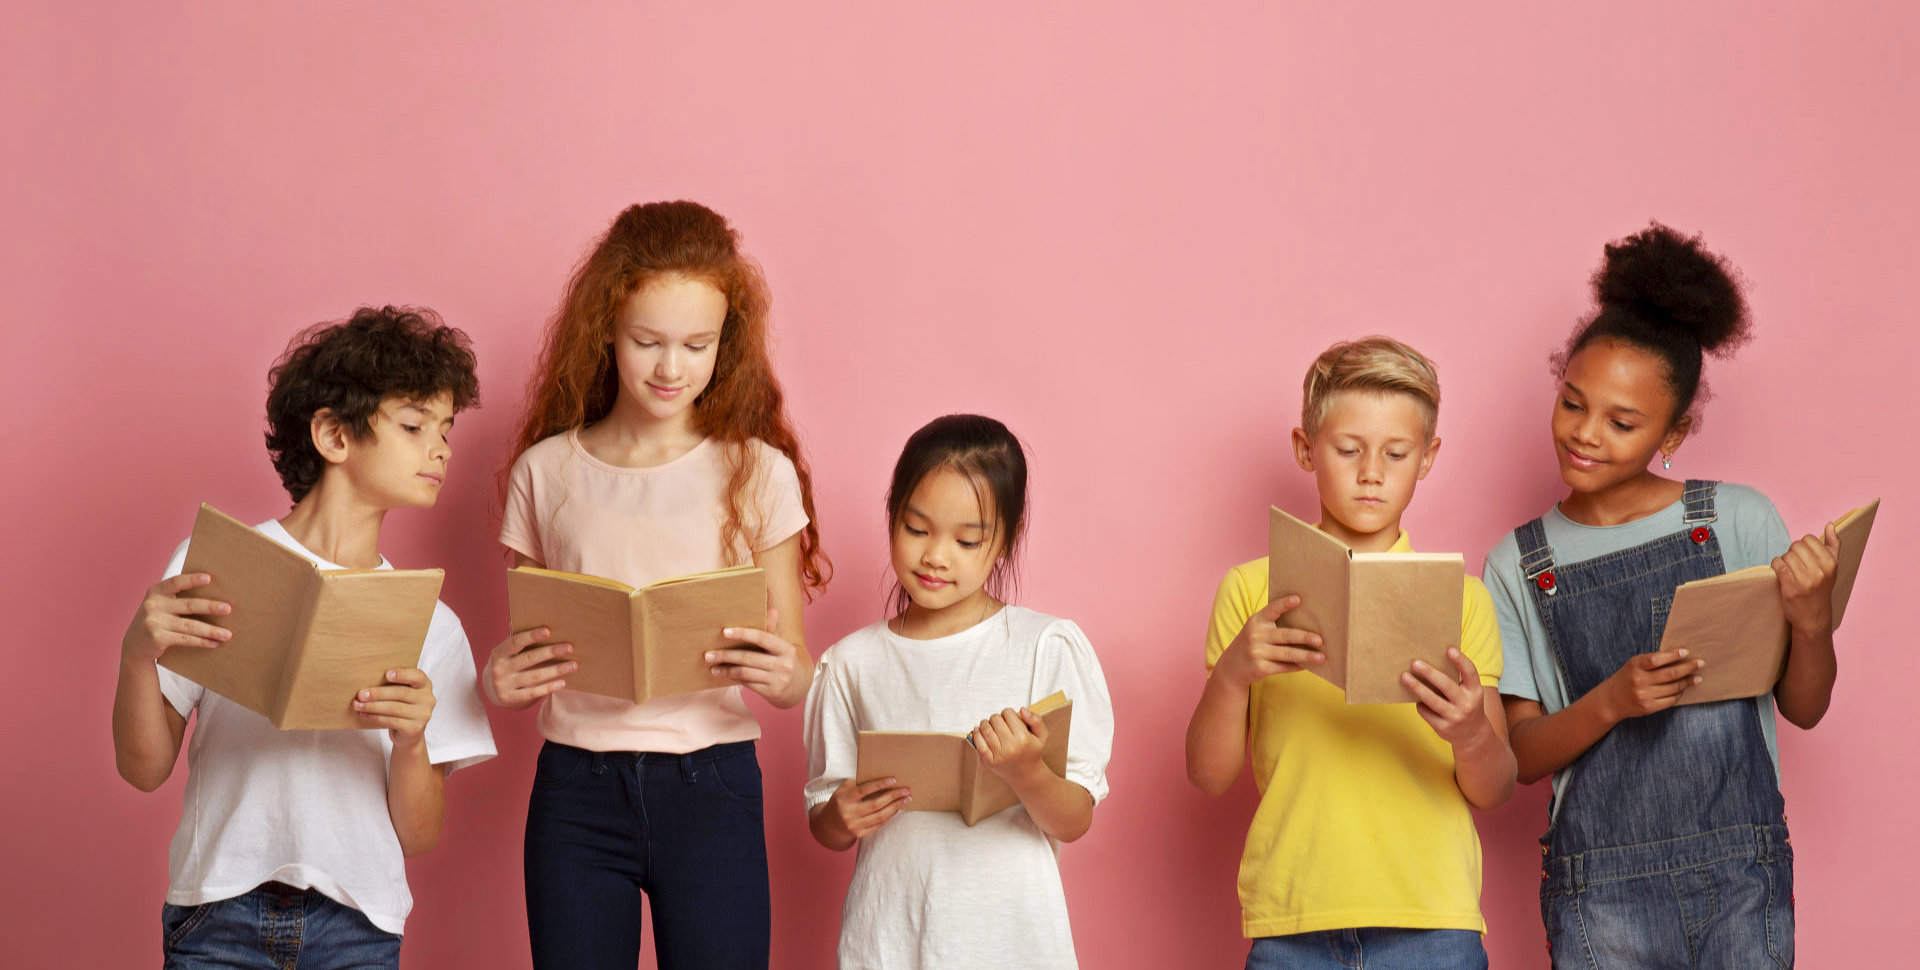 children holding a book